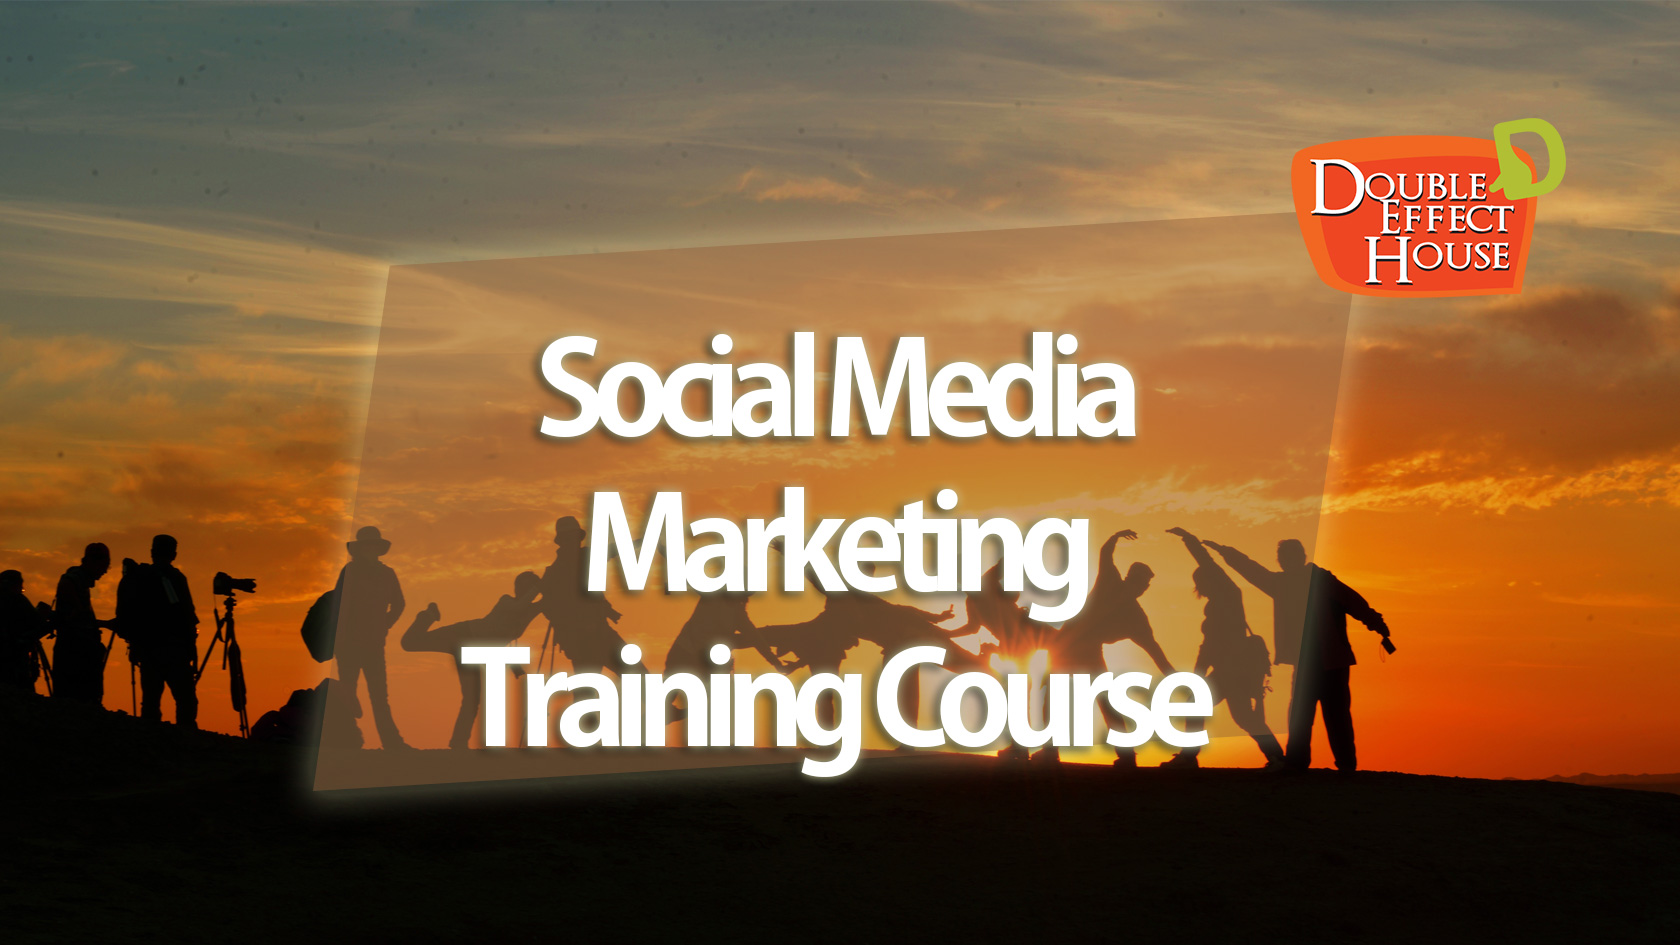 Social Media Marketing Training Course